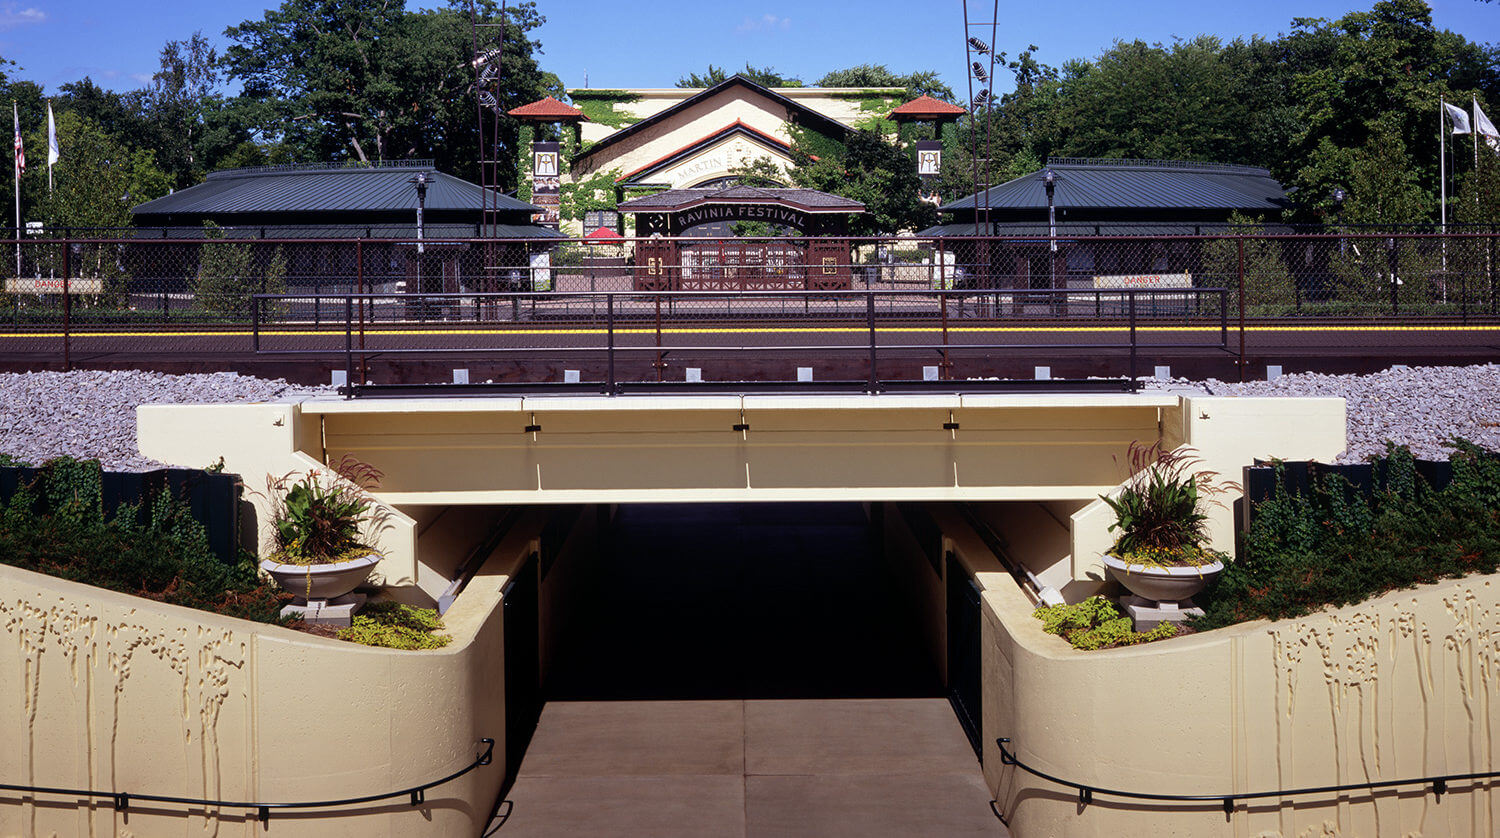 Ravinia Festival_ Railroad Bridge and Pedestrian Underpass underpass